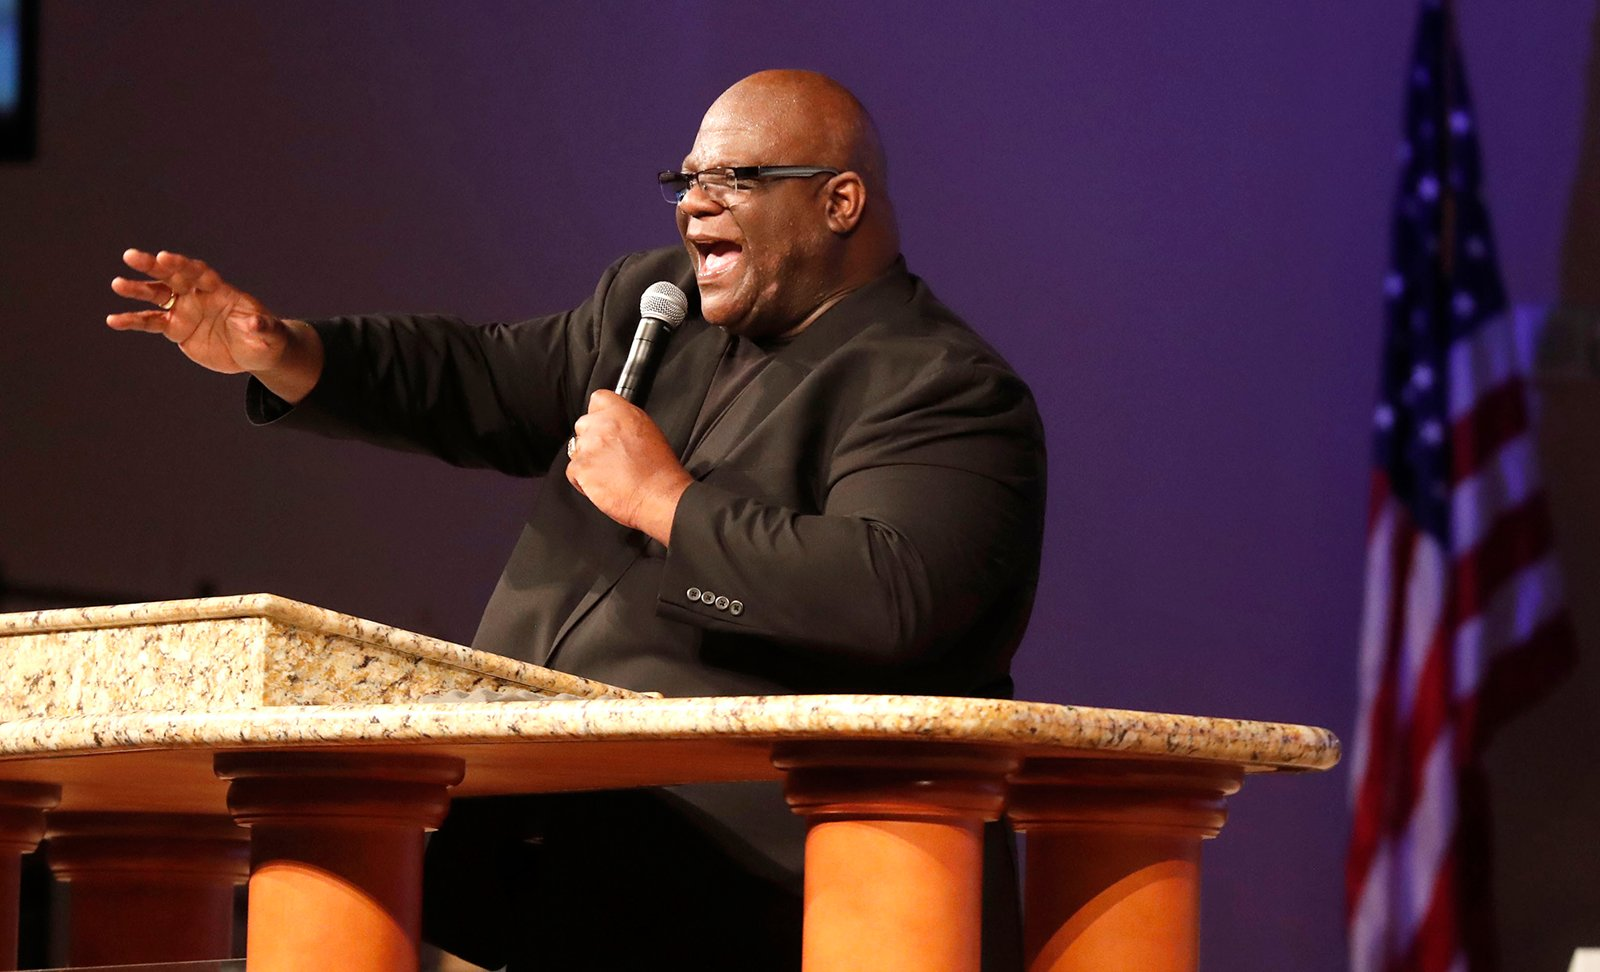 The Rev. Dwight McKissic, pastor of Cornerstone Baptist Church, speaks during services in Arlington, Texas, on June 7, 2020. (AP Photo/LM Otero)